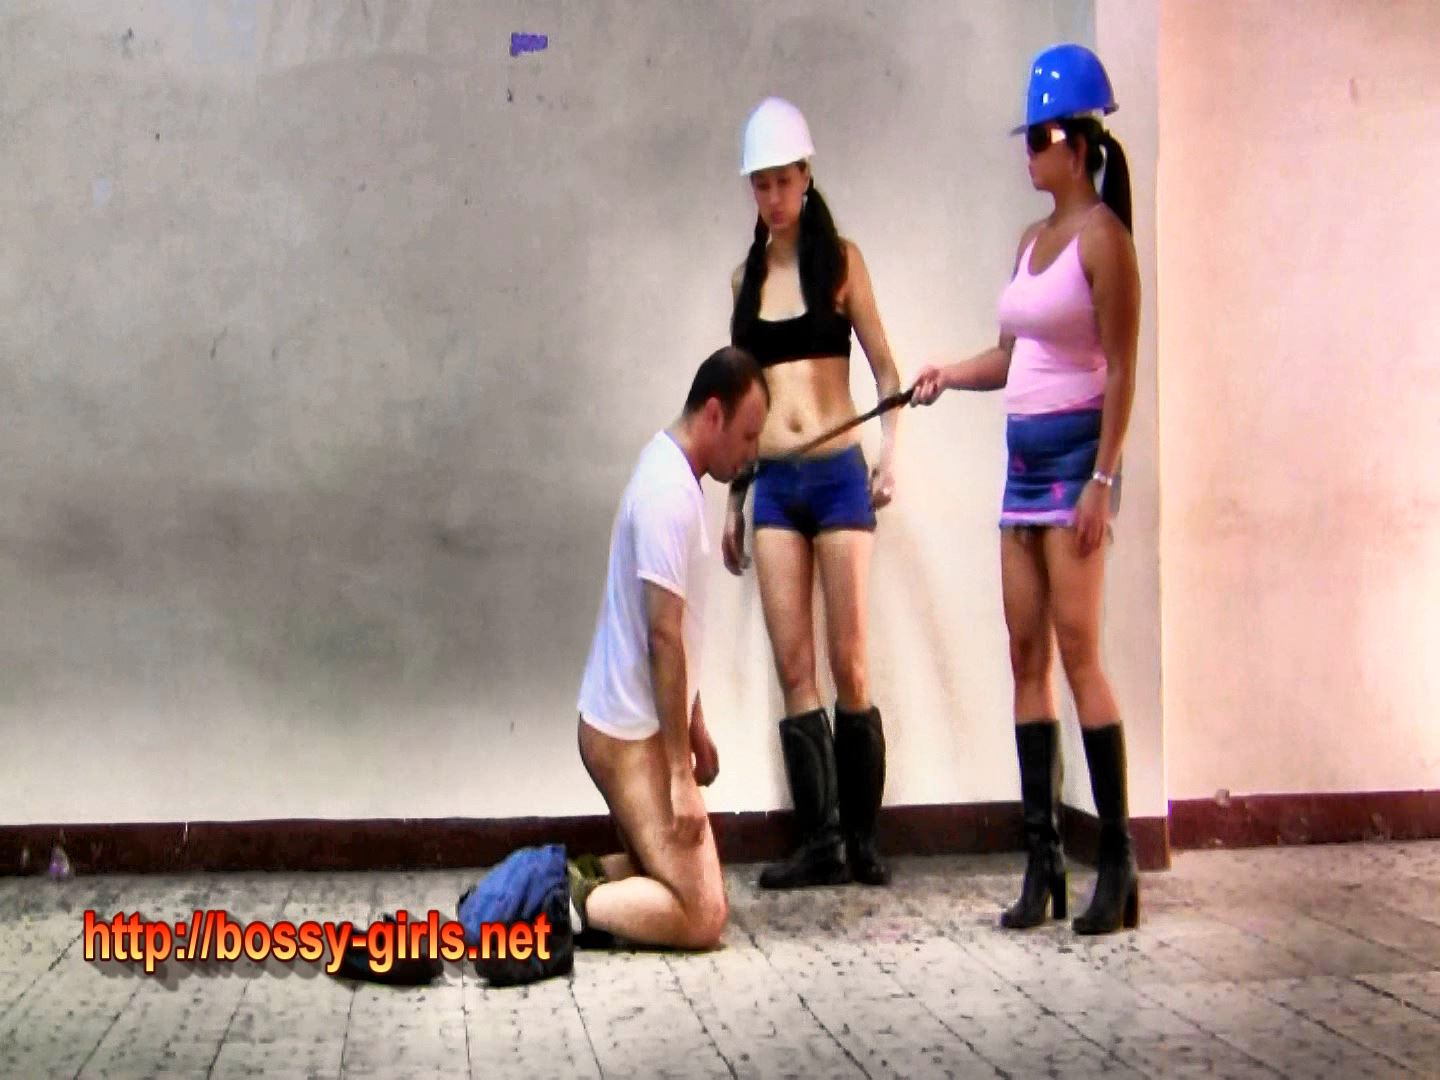 Mistress Leila, Mistress Dahlia In Scene: SADISTIC FACTORY GIRLS 03 Muscle Strengthening - BOSSY GIRLS - FULL HD/1080p/WMV